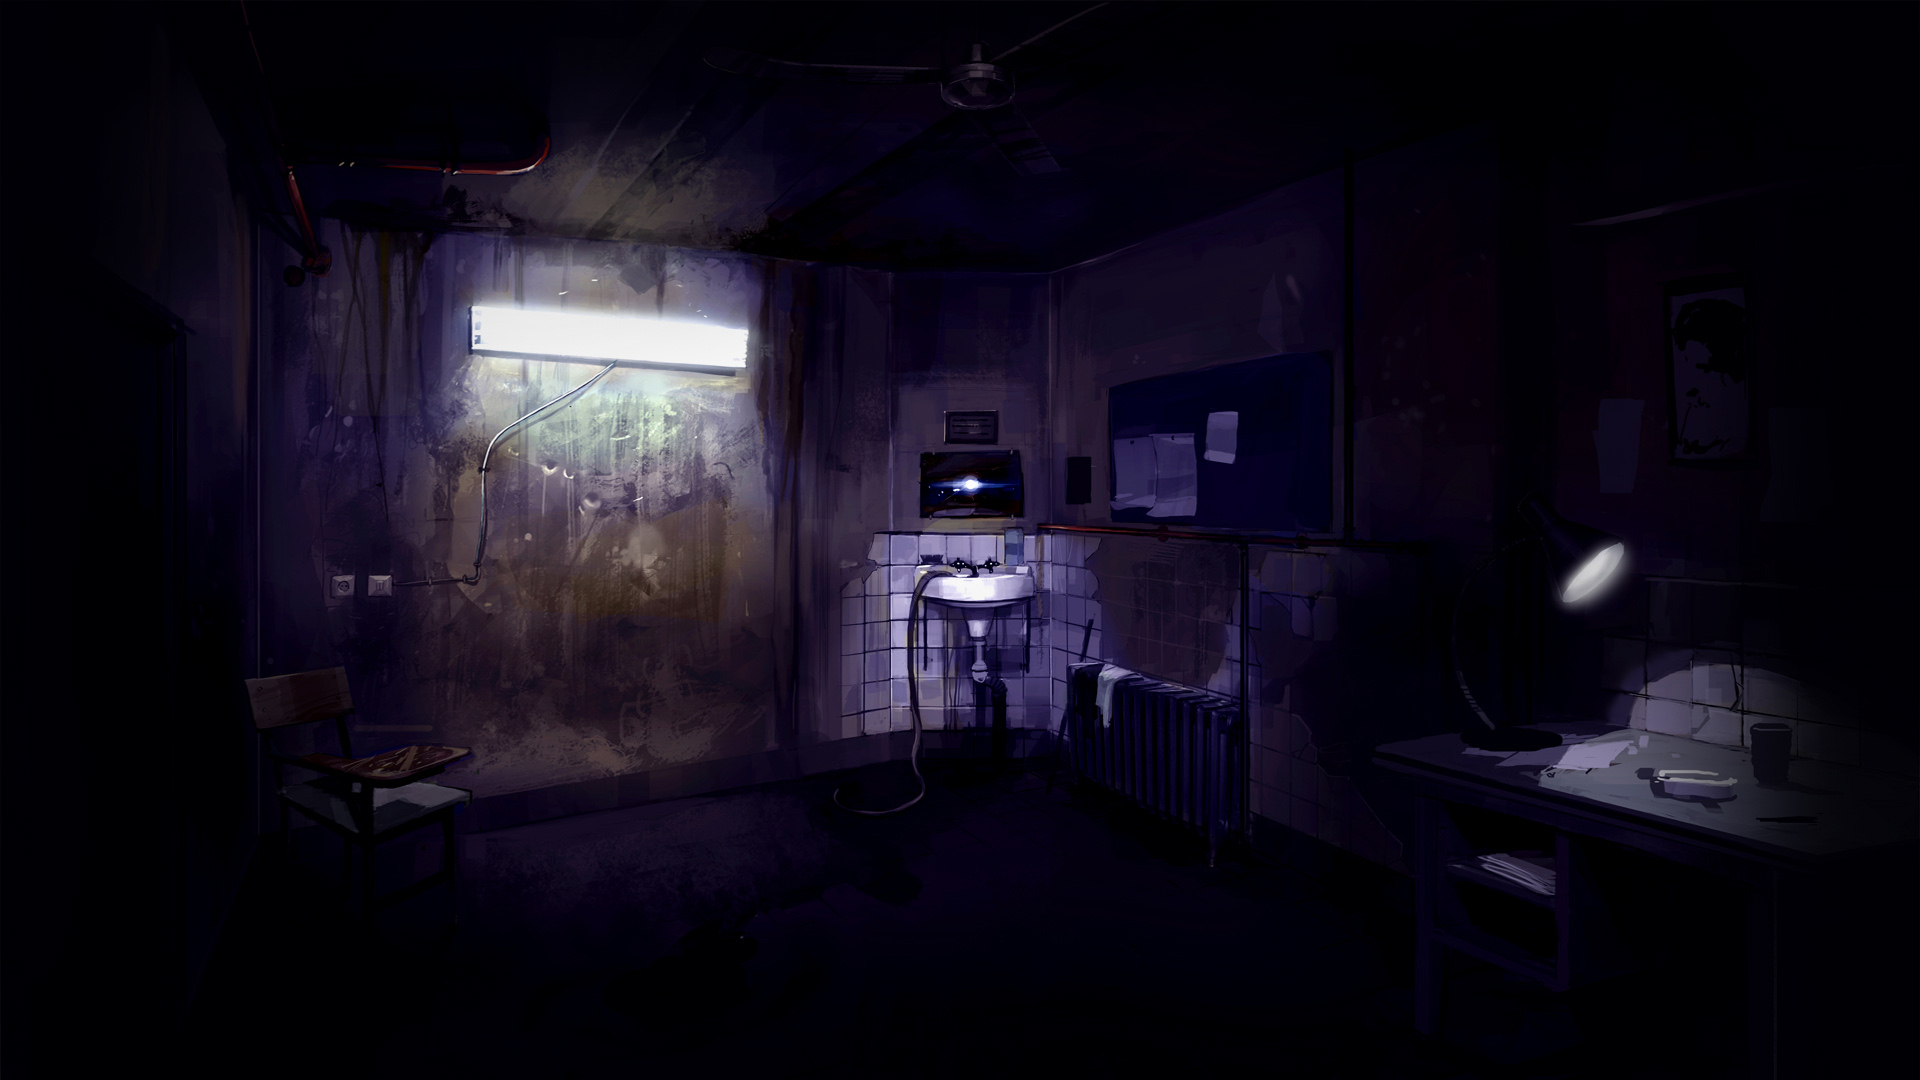 Dark Anime Background Scenery Posted By Michelle Mercado